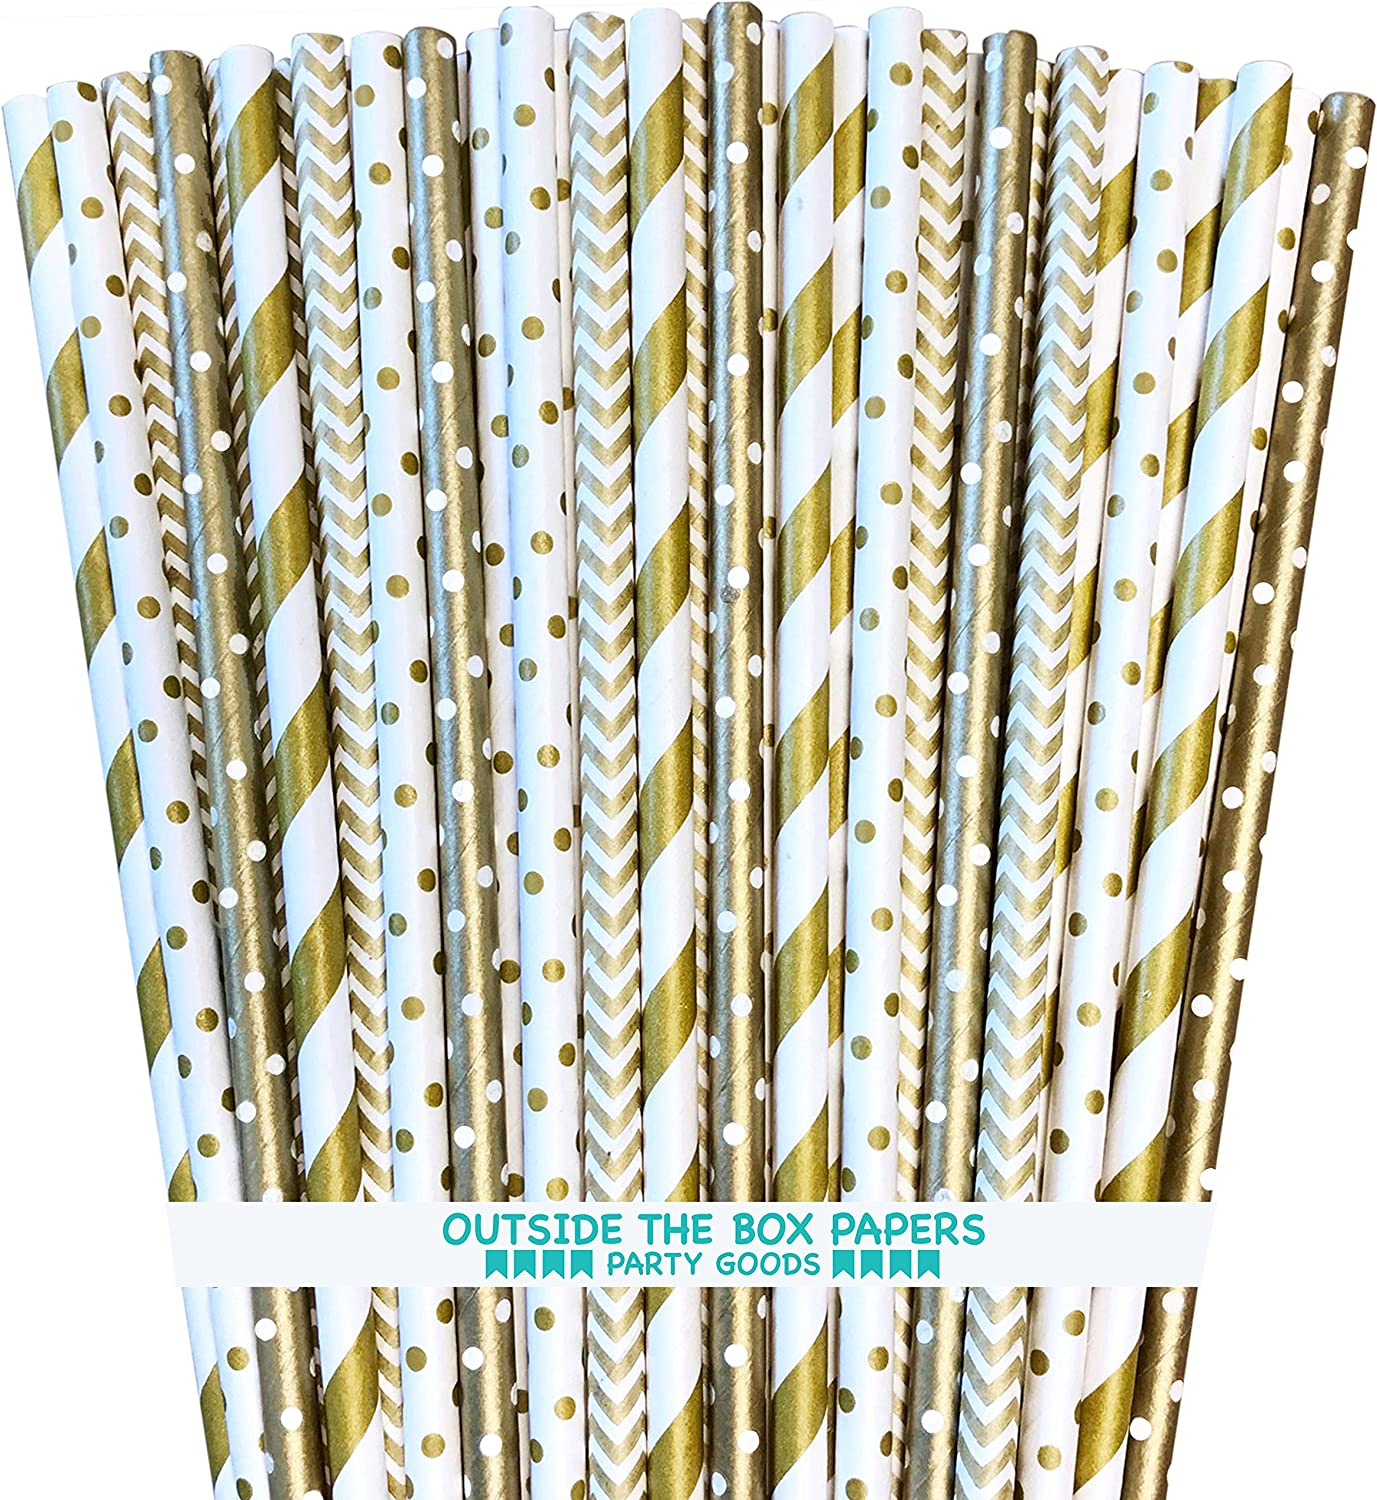 Gold Paper Straws - Stripe Chevron Polka Dot - 7.75 Inches - Pack of 100 - Outside the Box Papers Brand